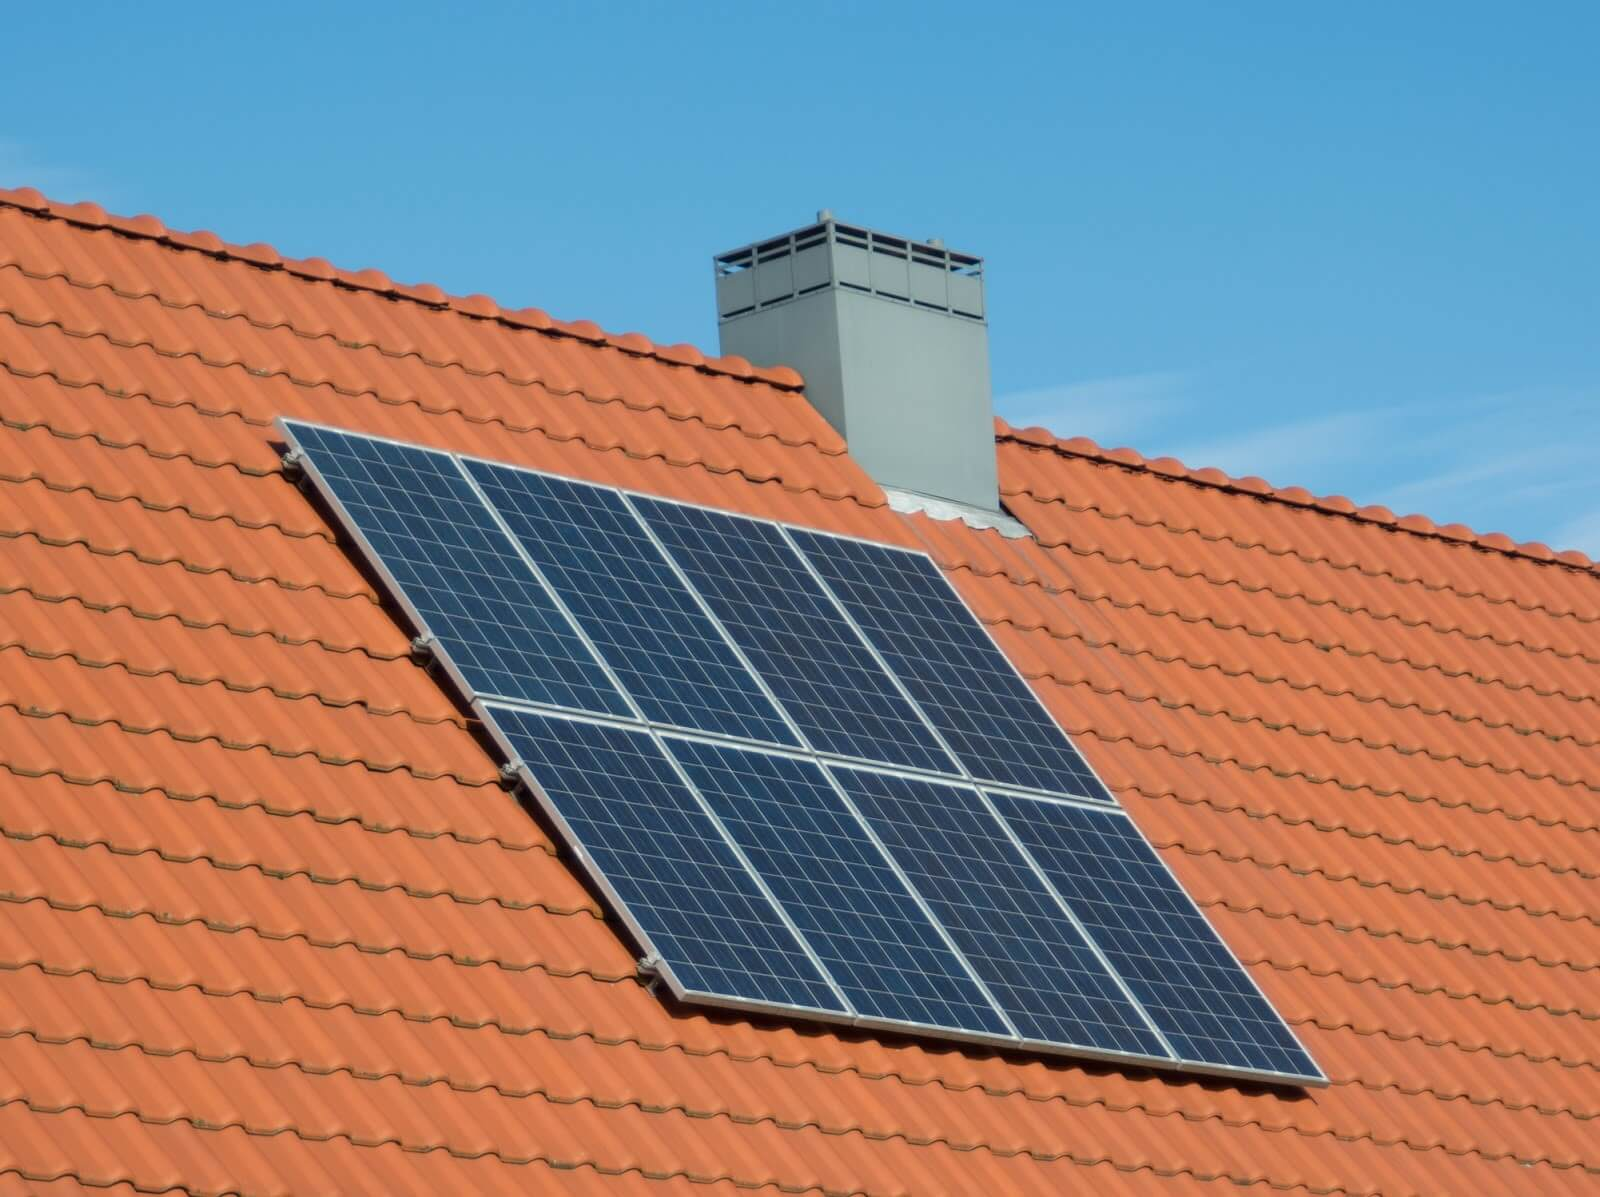 Reduce Carbon Footprint With Solar Energy & High-Efficiency HVAC